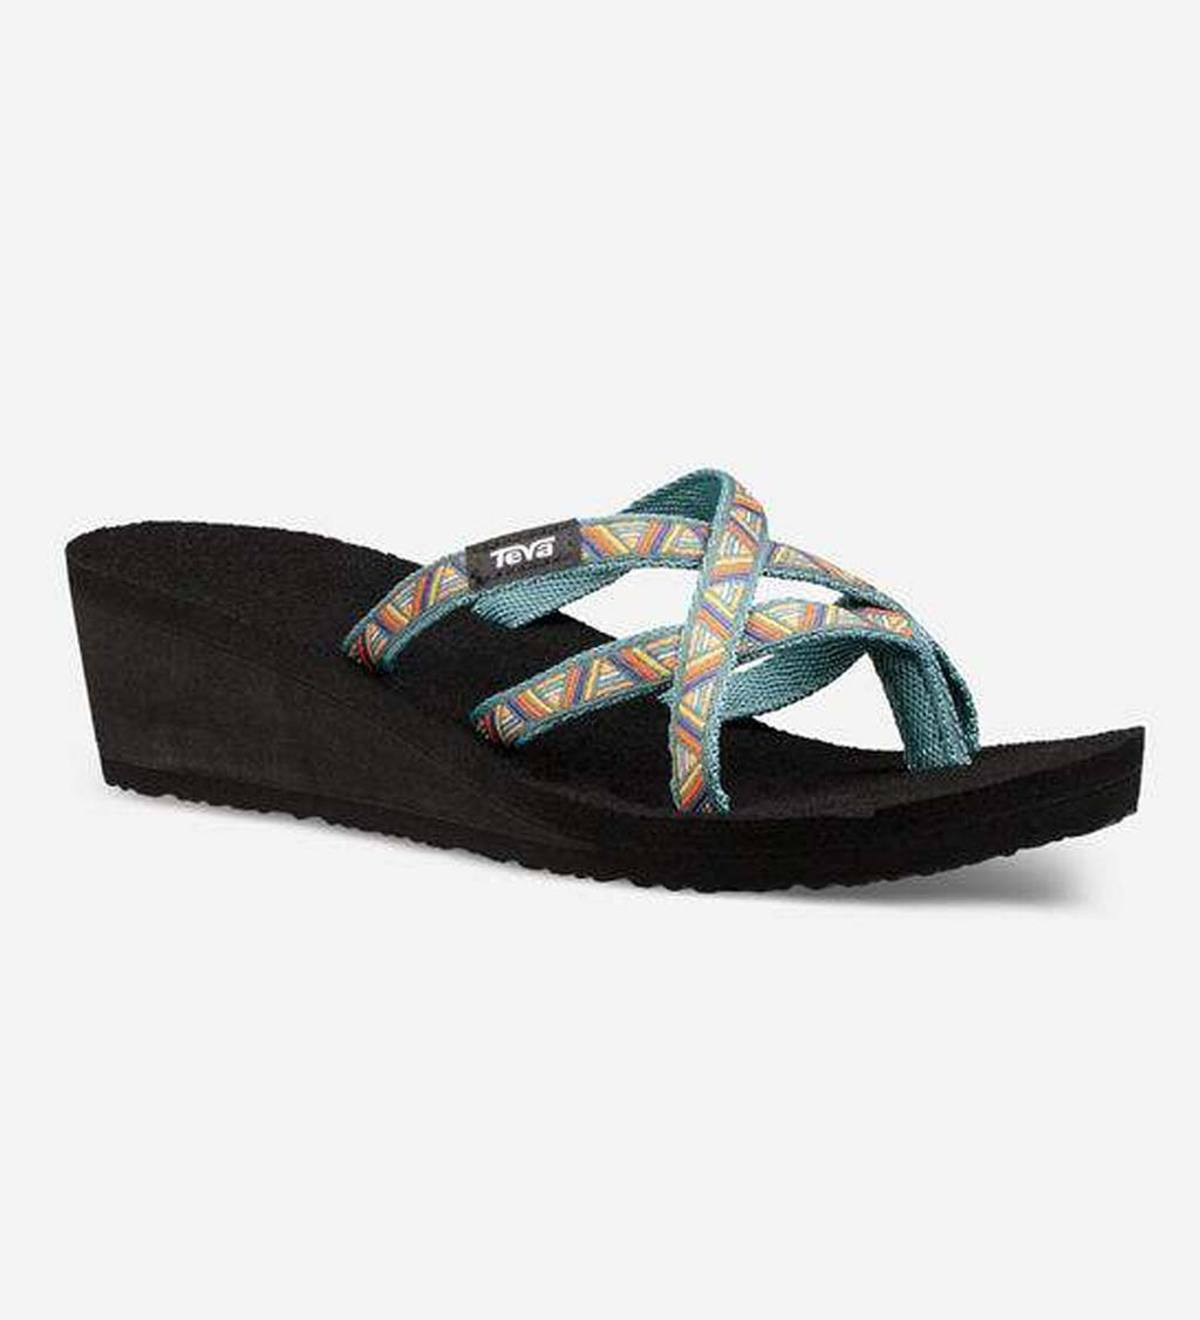 2bd9e3b914969 Teva Womens Mush Mandalyn Wedge Ola 2 - Atlantic - Size 6